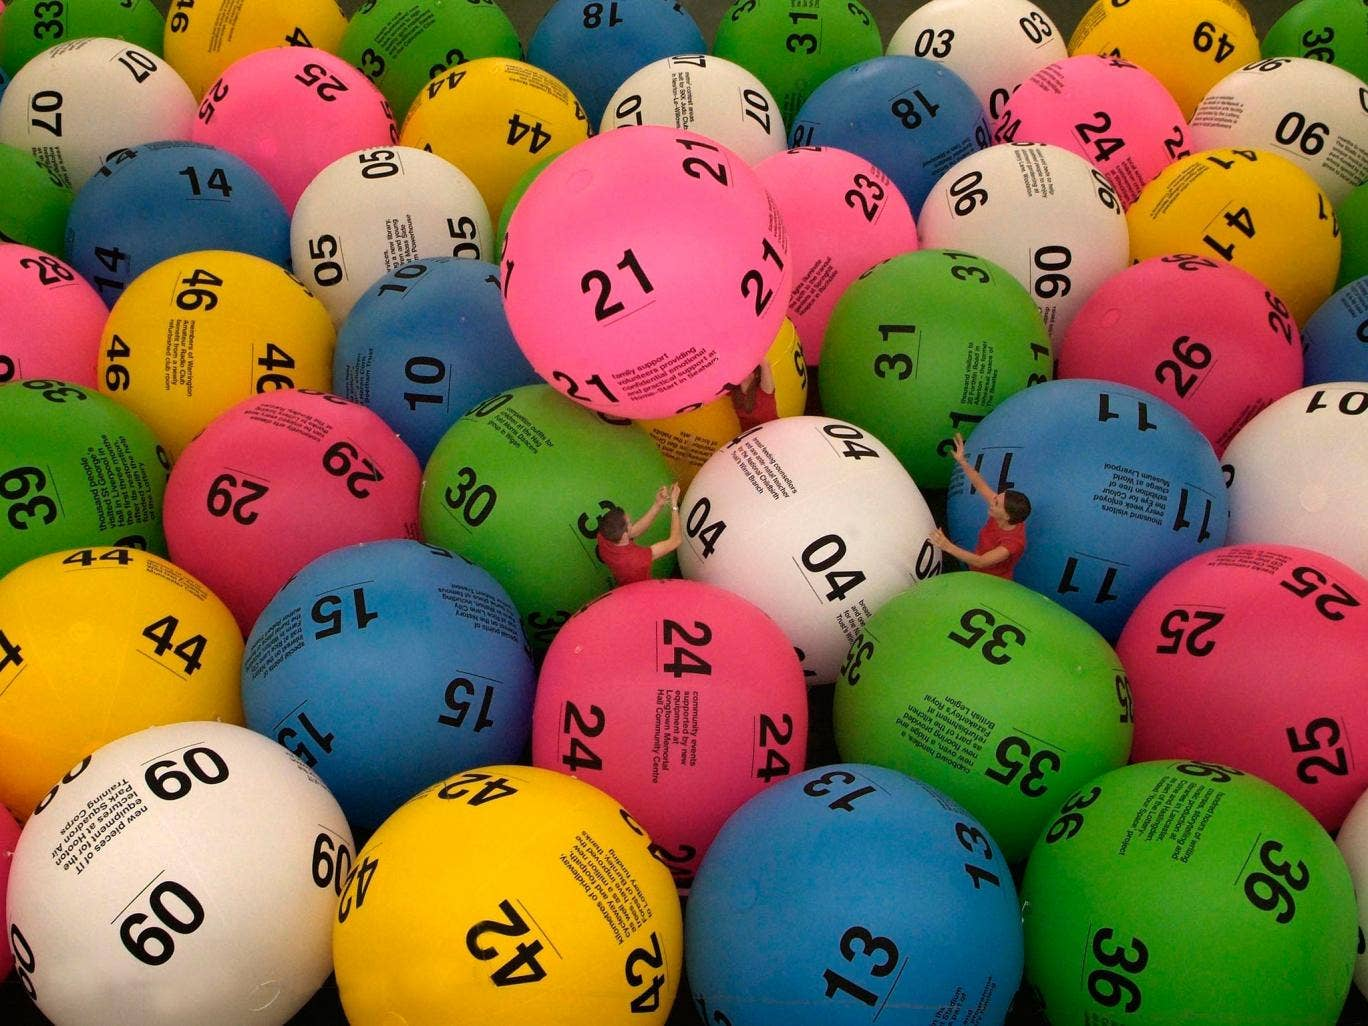 lotto texas numbers feb 17 2016